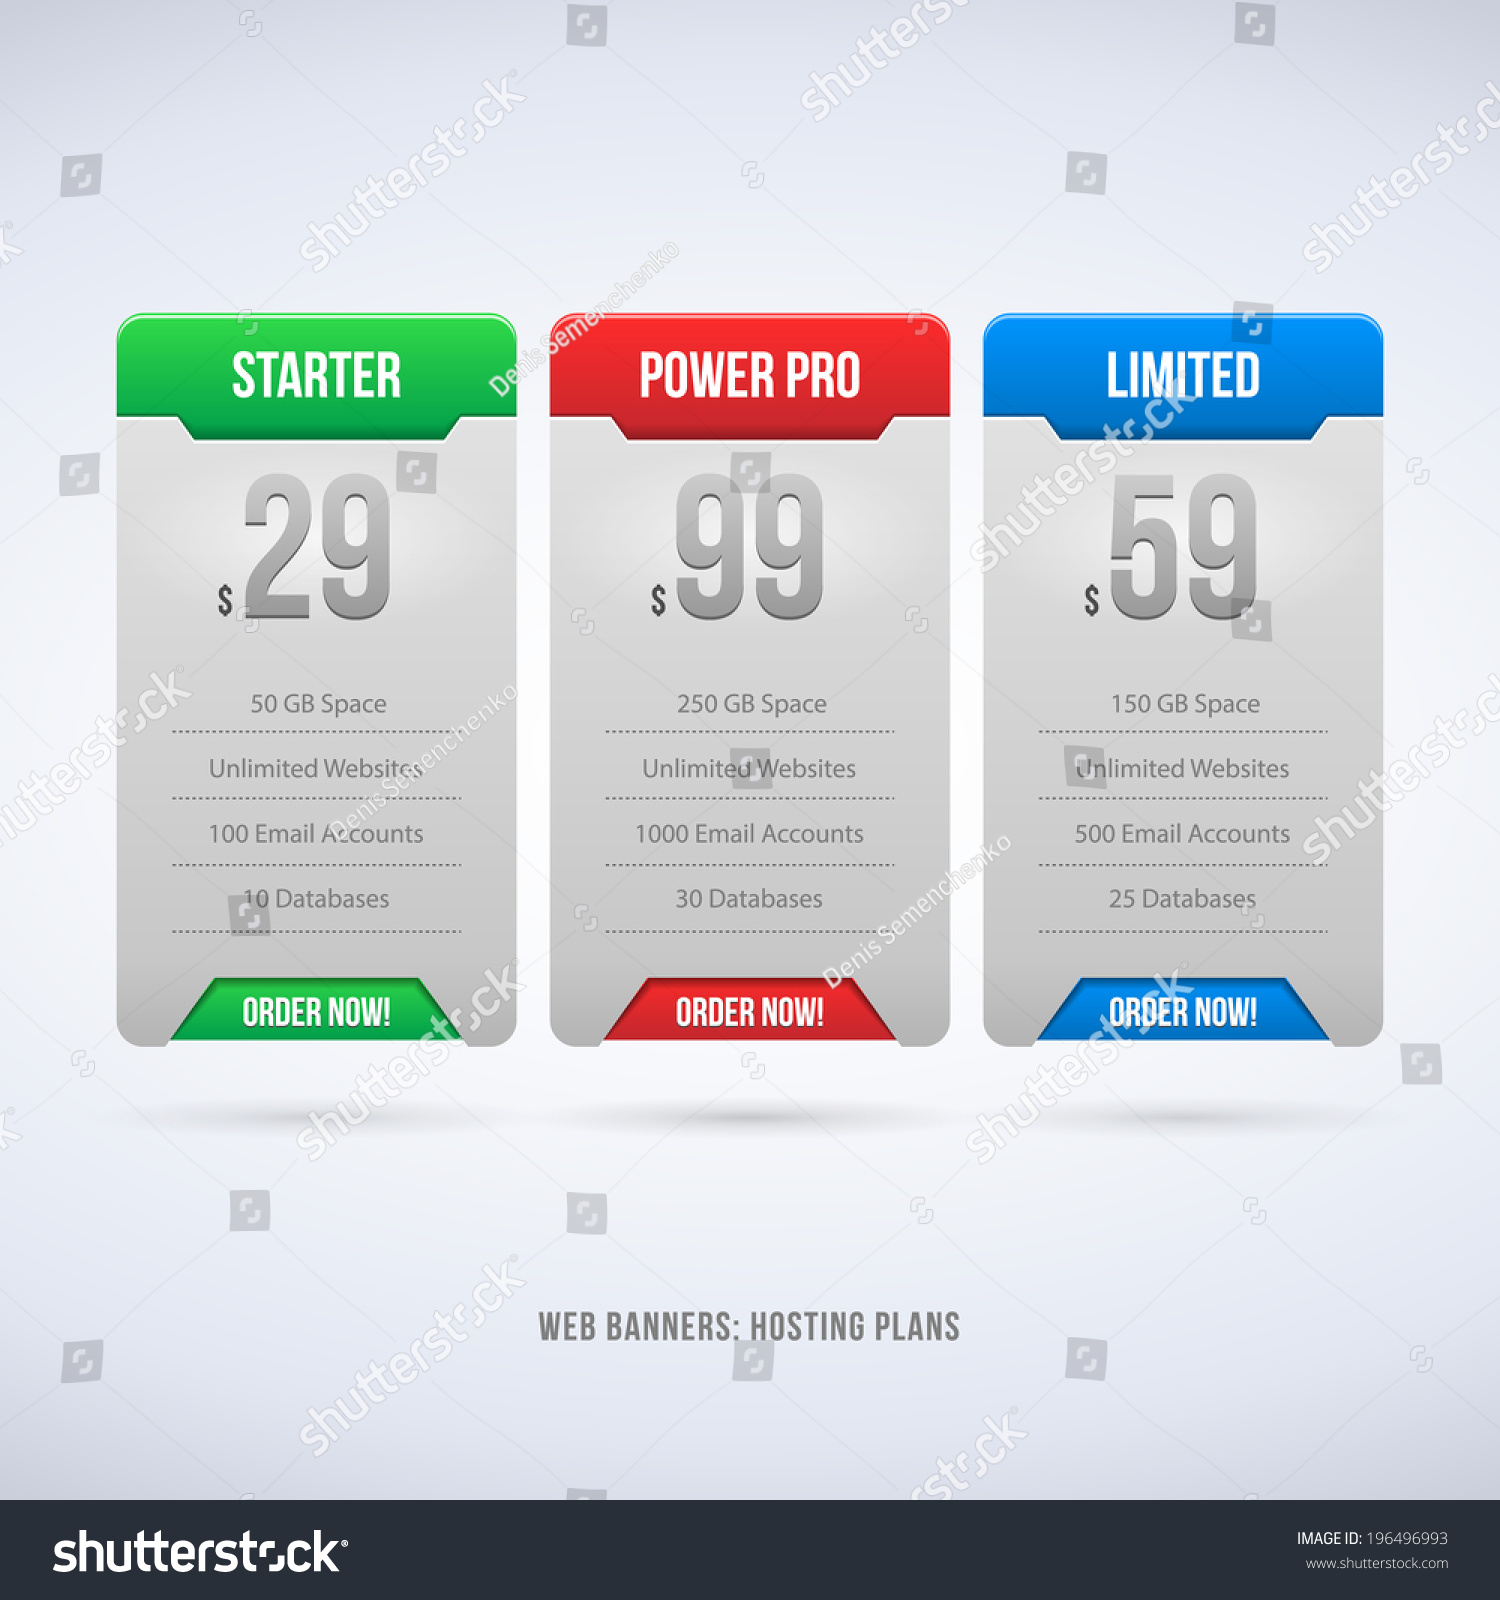 Design a banner for your website - Perfect Web Boxes Hosting Plans For Your Website Design Blue Banner Order Button